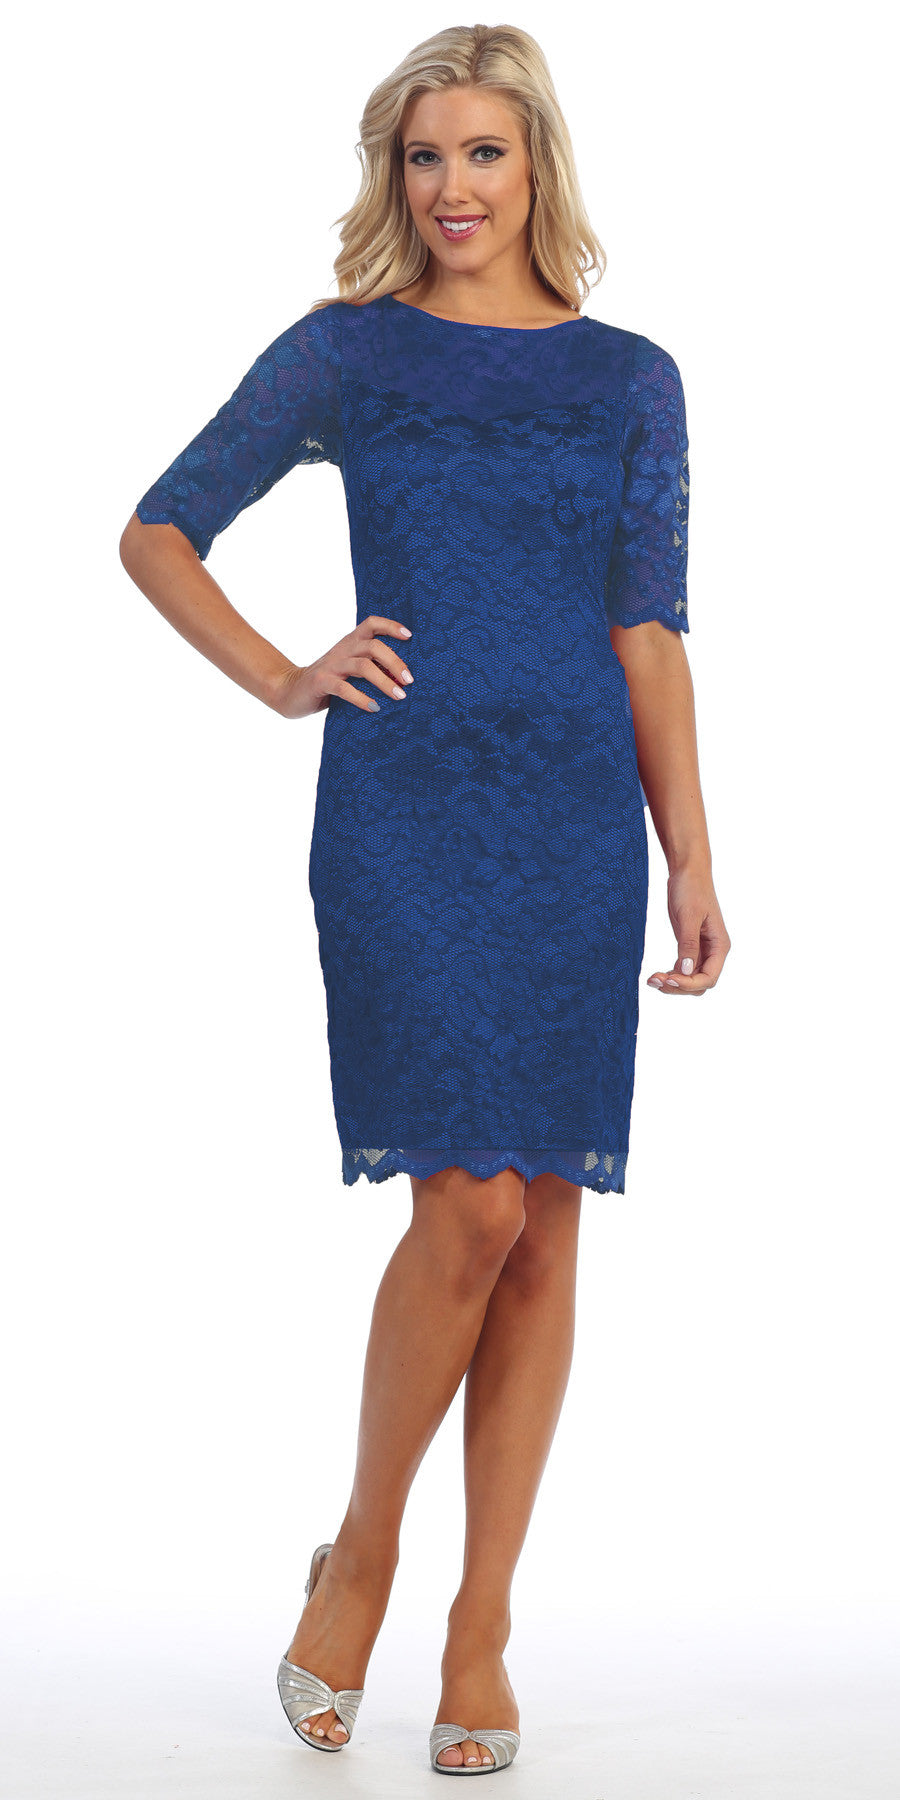 Lace Cocktail Dress Knee Length Royal Blue/Nude 3/4 Length Sleeves